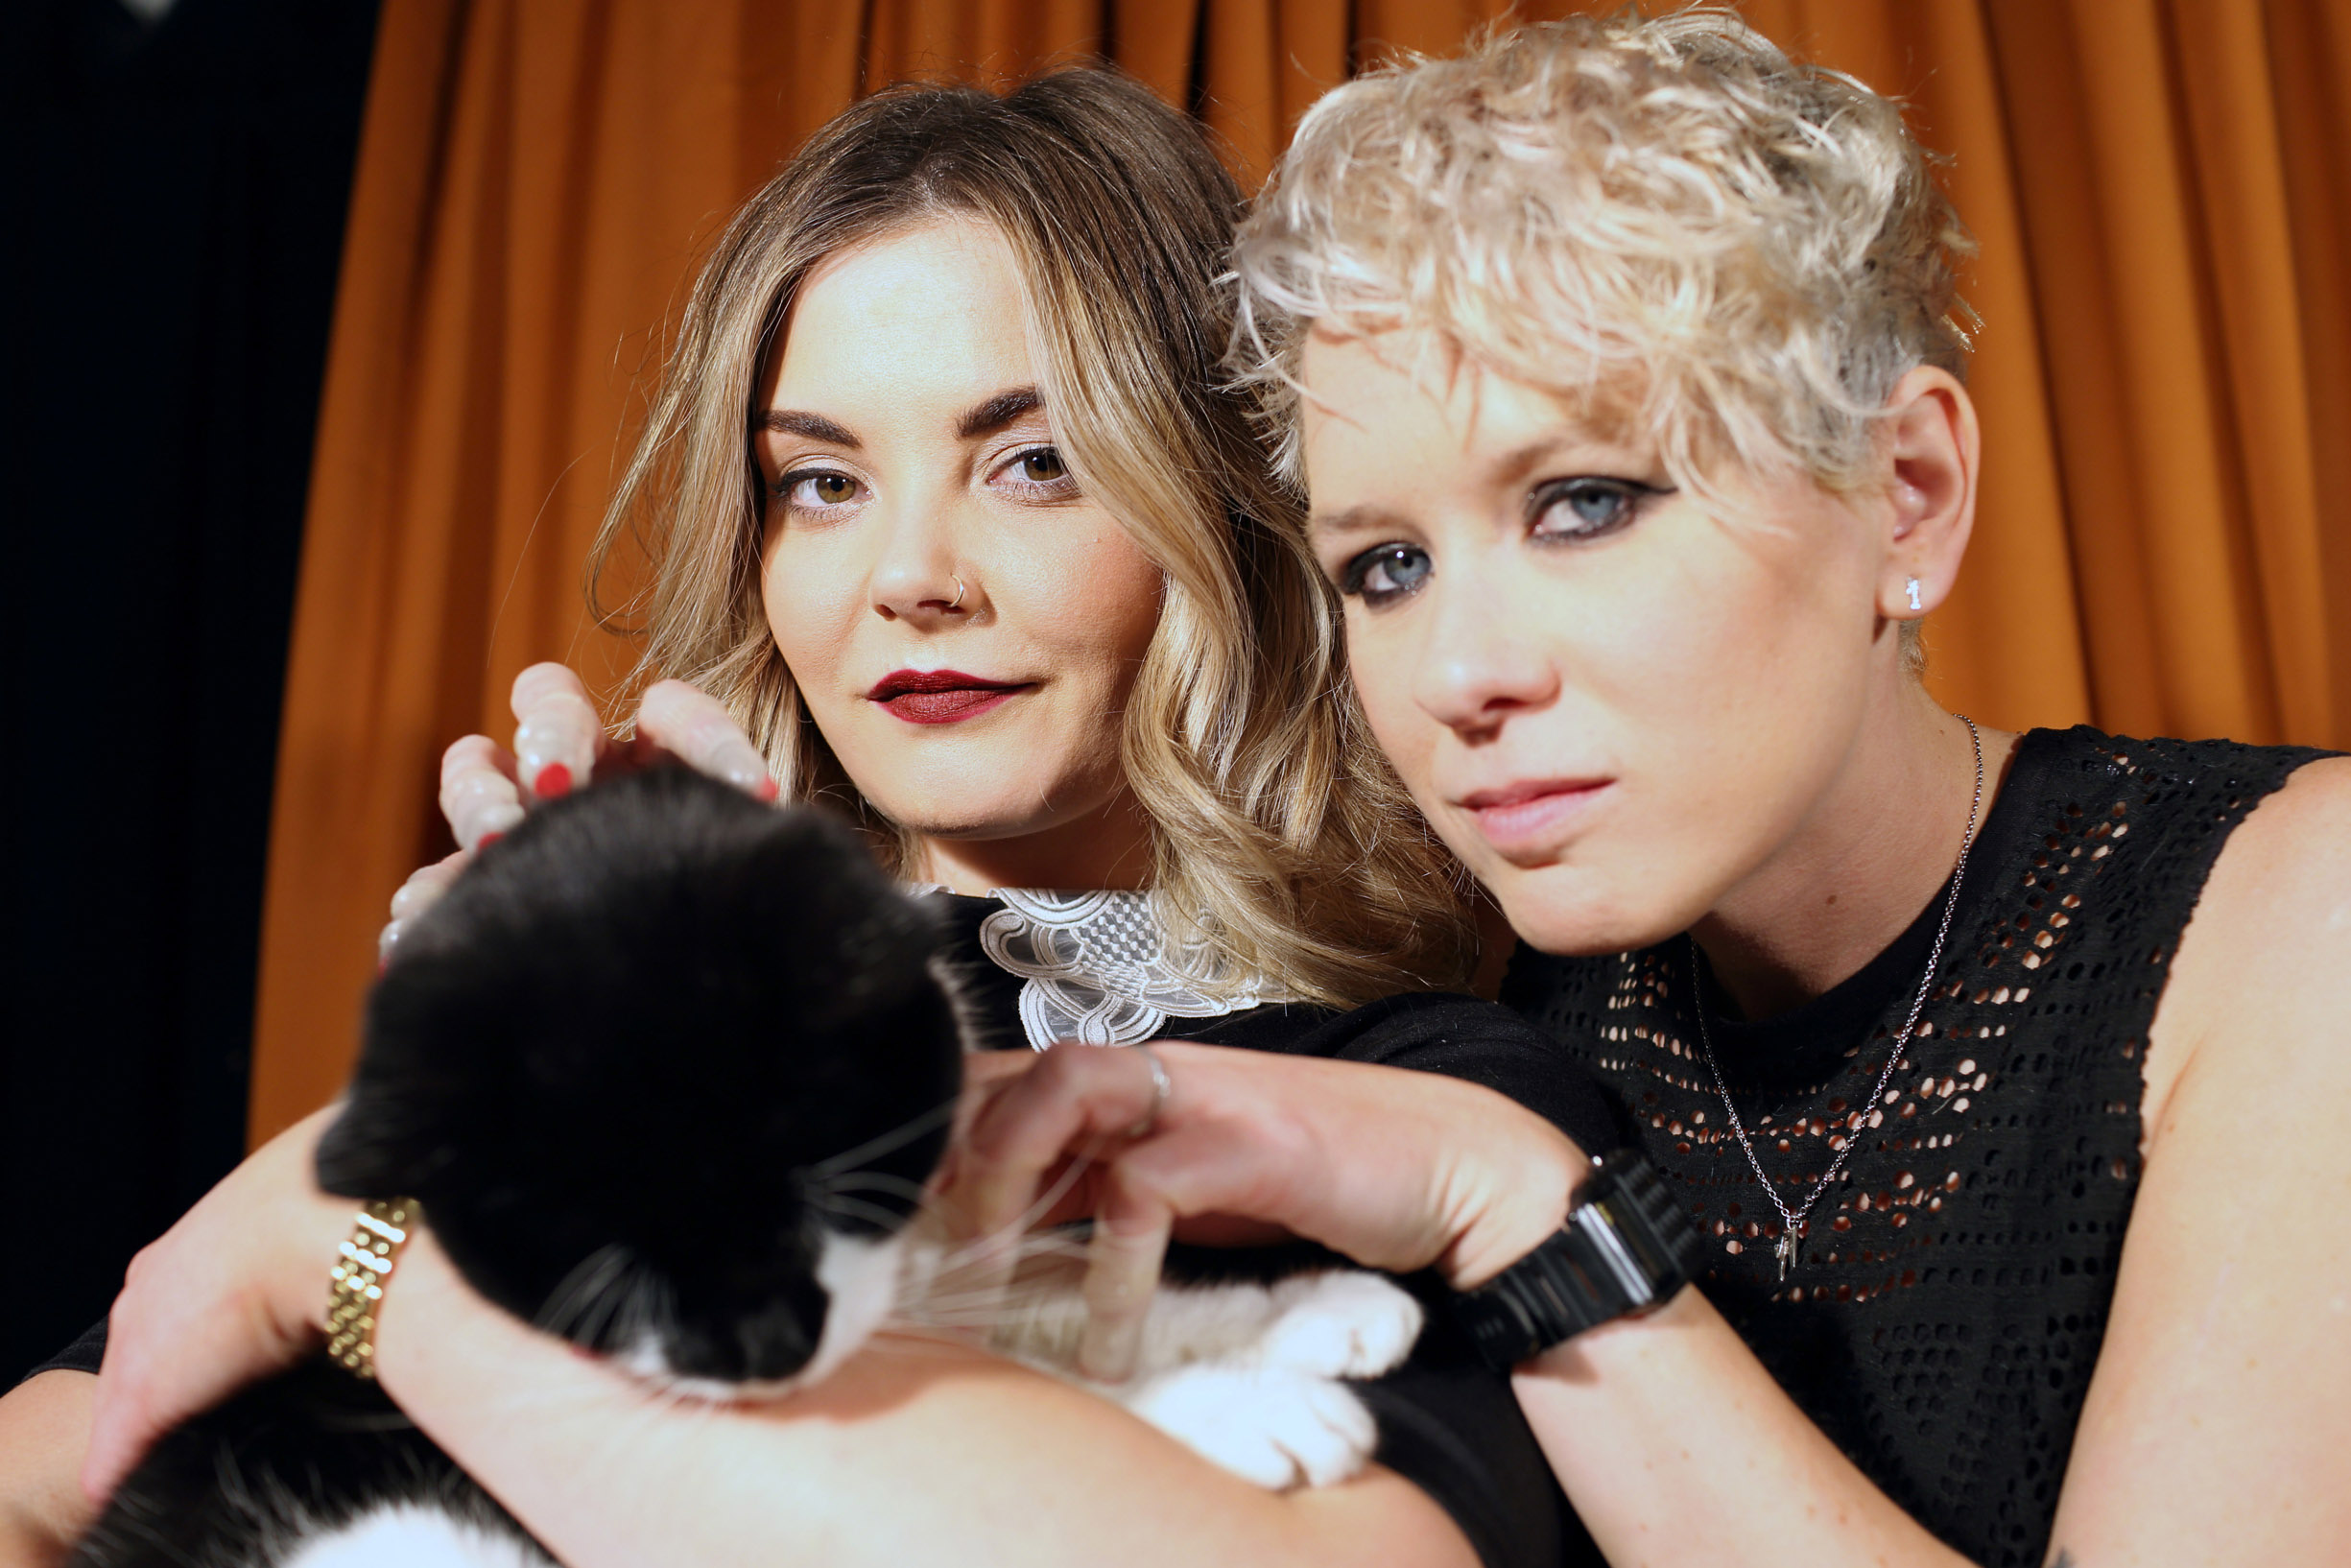 Honeyblood: Ready for the magic